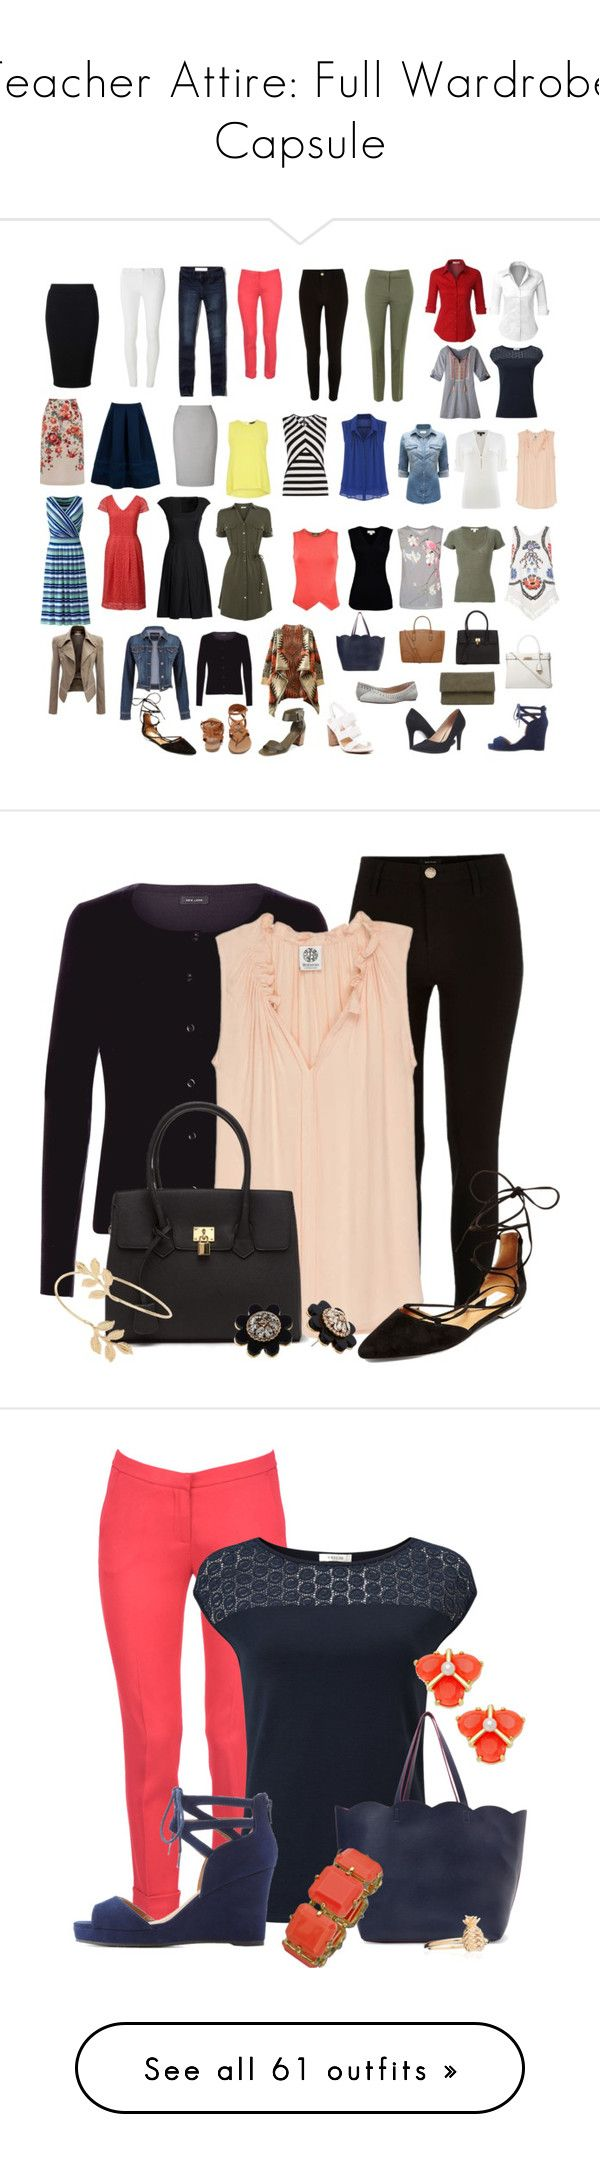 """""""Teacher Attire: Full Wardrobe Capsule"""" by vanessa-bohlmann ❤ liked on Polyvore featuring Dorothy Perkins, River Island, KI6? Who Are You?, John Lewis, Abercrombie & Fitch, Canvas by Lands' End, Lands' End, Karen Millen, Bobeau and Velvet by Graham & Spencer"""